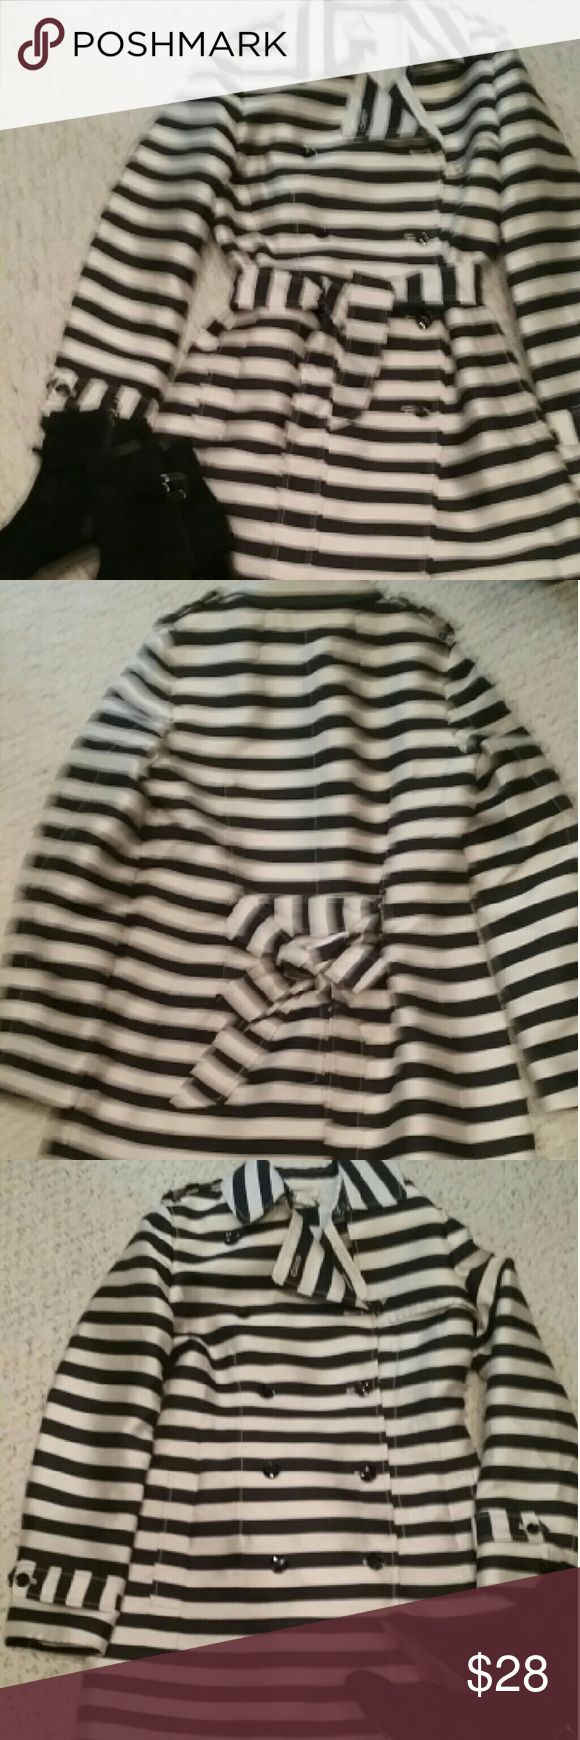 Banana Republic striped trench coat size S Dressy double breasted trench looks perfect over a business dress, or with jeans. Fully lined and belted. Slight sheen, looks like silk shantung,  but is rayon. Banana Republic Jackets & Coats Trench Coats